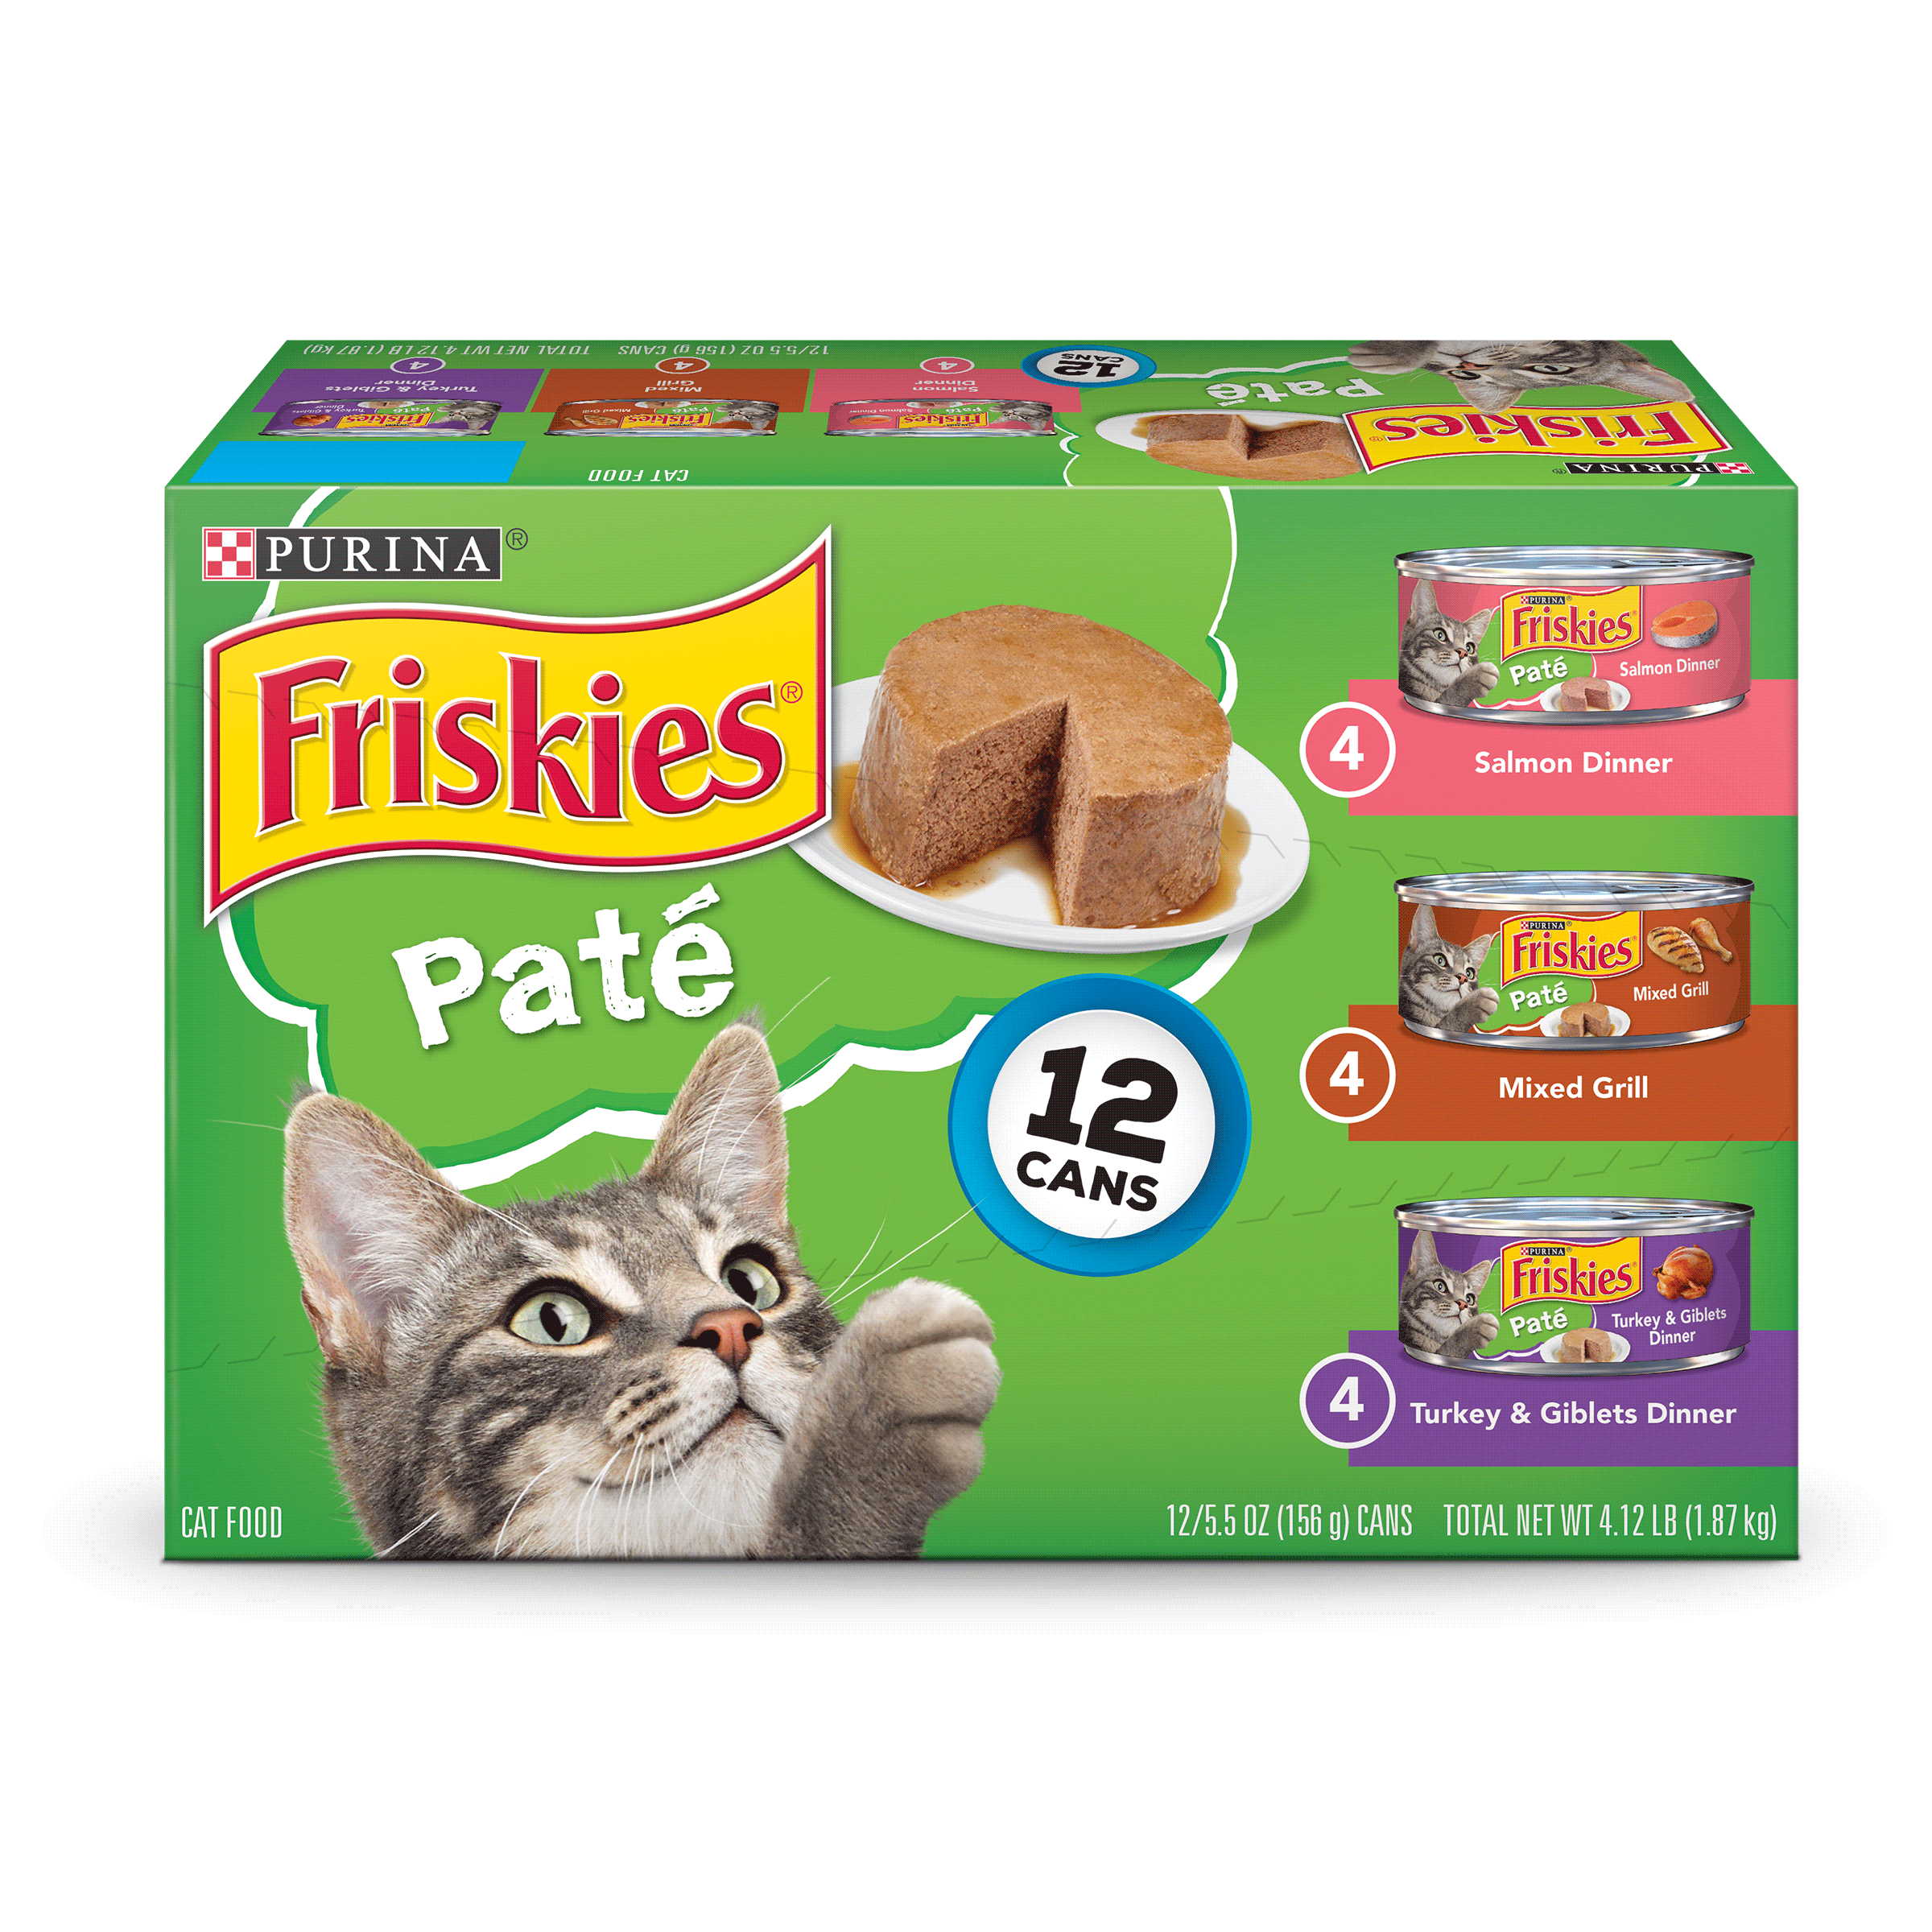 Friskies Pate Wet Cat Food Variety Pack; Salmon, Mixed Grill, Turkey & Giblets (12) 5.5 oz. Cans by Nestle Purina Petcare Company